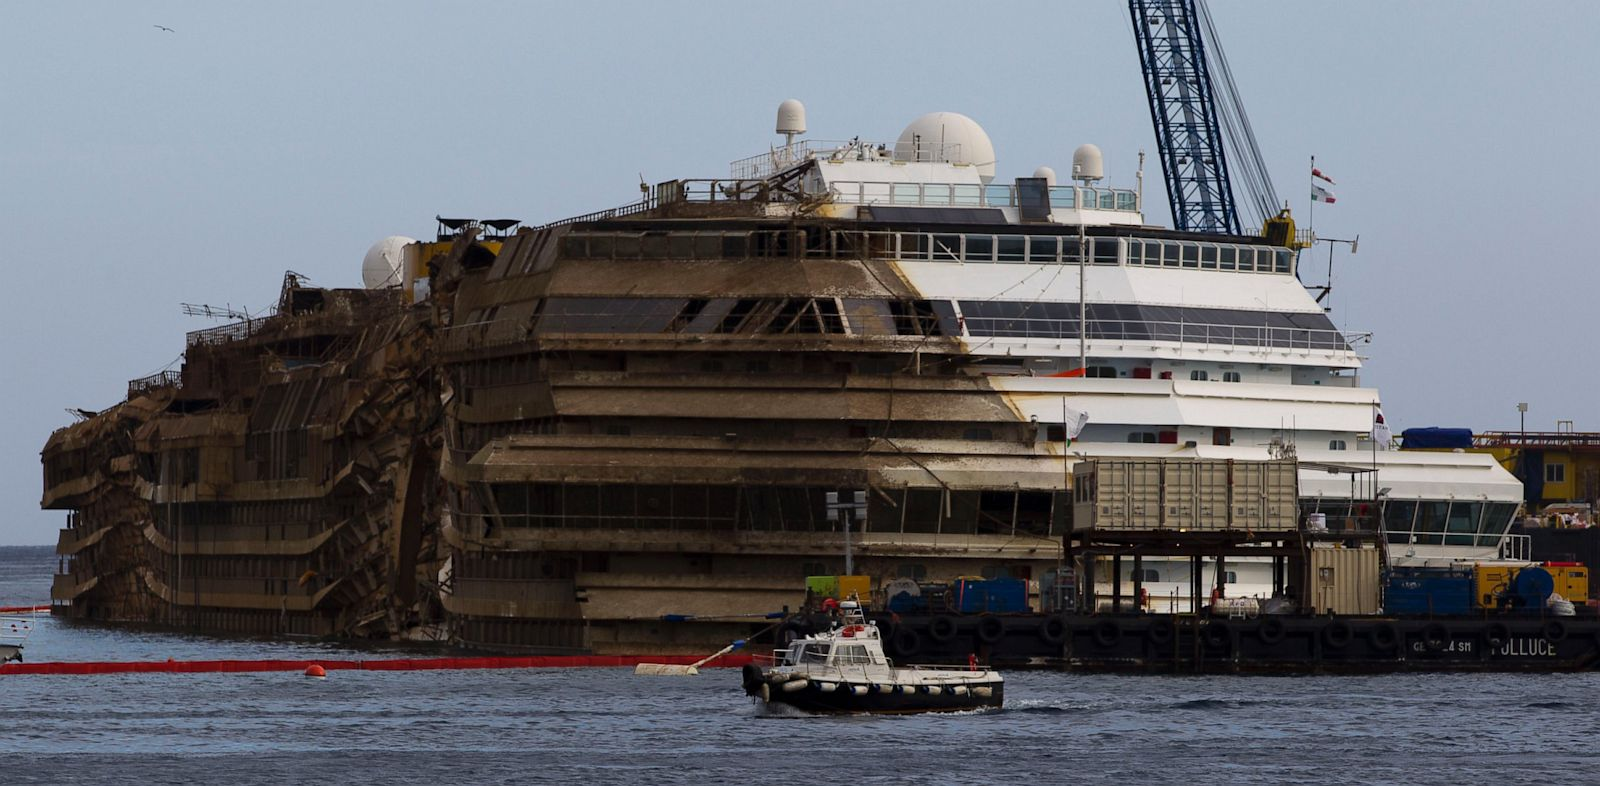 PHOTO: The Costa Concordia is seen after it was lifted upright, on the Tuscan Island of Giglio, Italy, early Tuesday morning, Sept. 17, 2013.